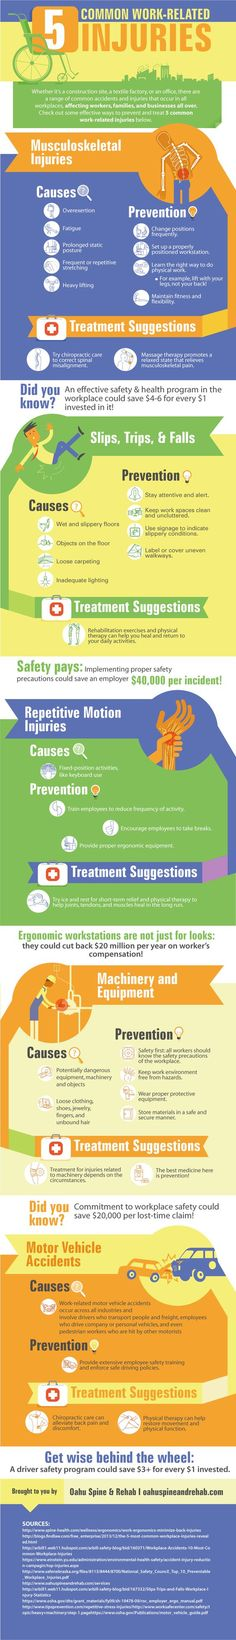 Whether it's a construction site, a textile factory, or an office, there are a range of common accidents and injuries that occur in all workplaces, affecting workers, families, and businesses all over. Check out some effective ways to prevent and treat 5 common work-related injuries below